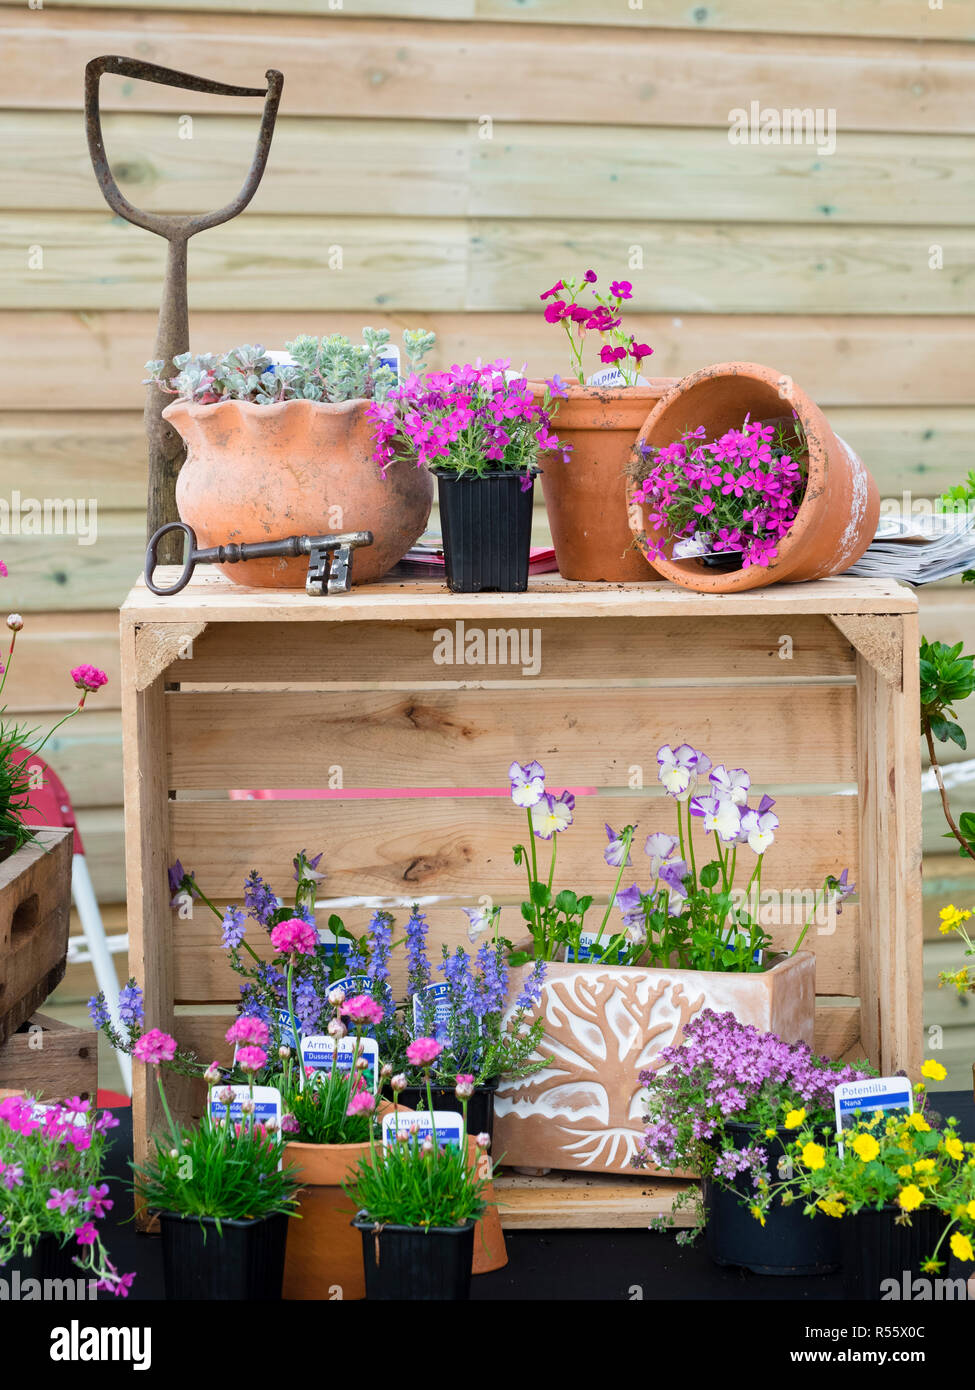 Part of the plant display on The Garden House stand at Devon County Show 2018 - Stock Image